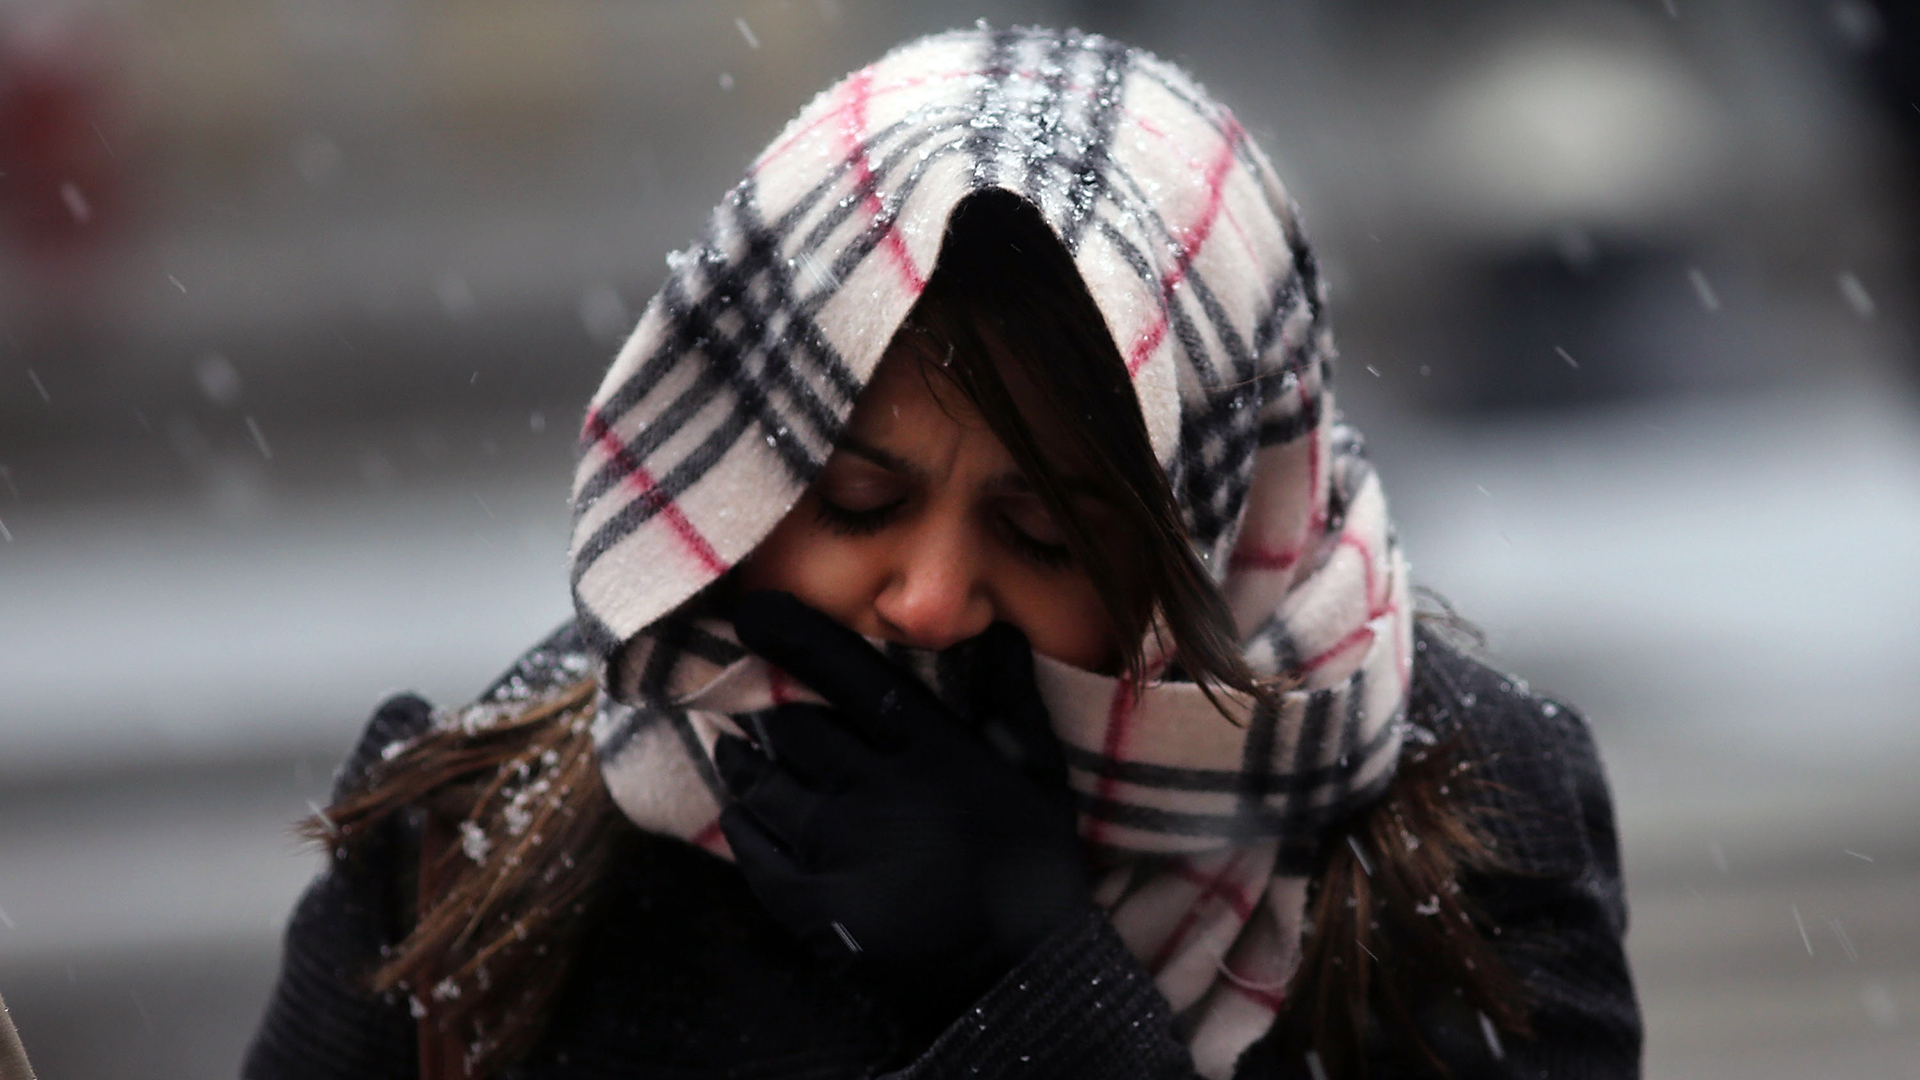 Woman bundled up for cold weather in NYC-159532.jpg27912019